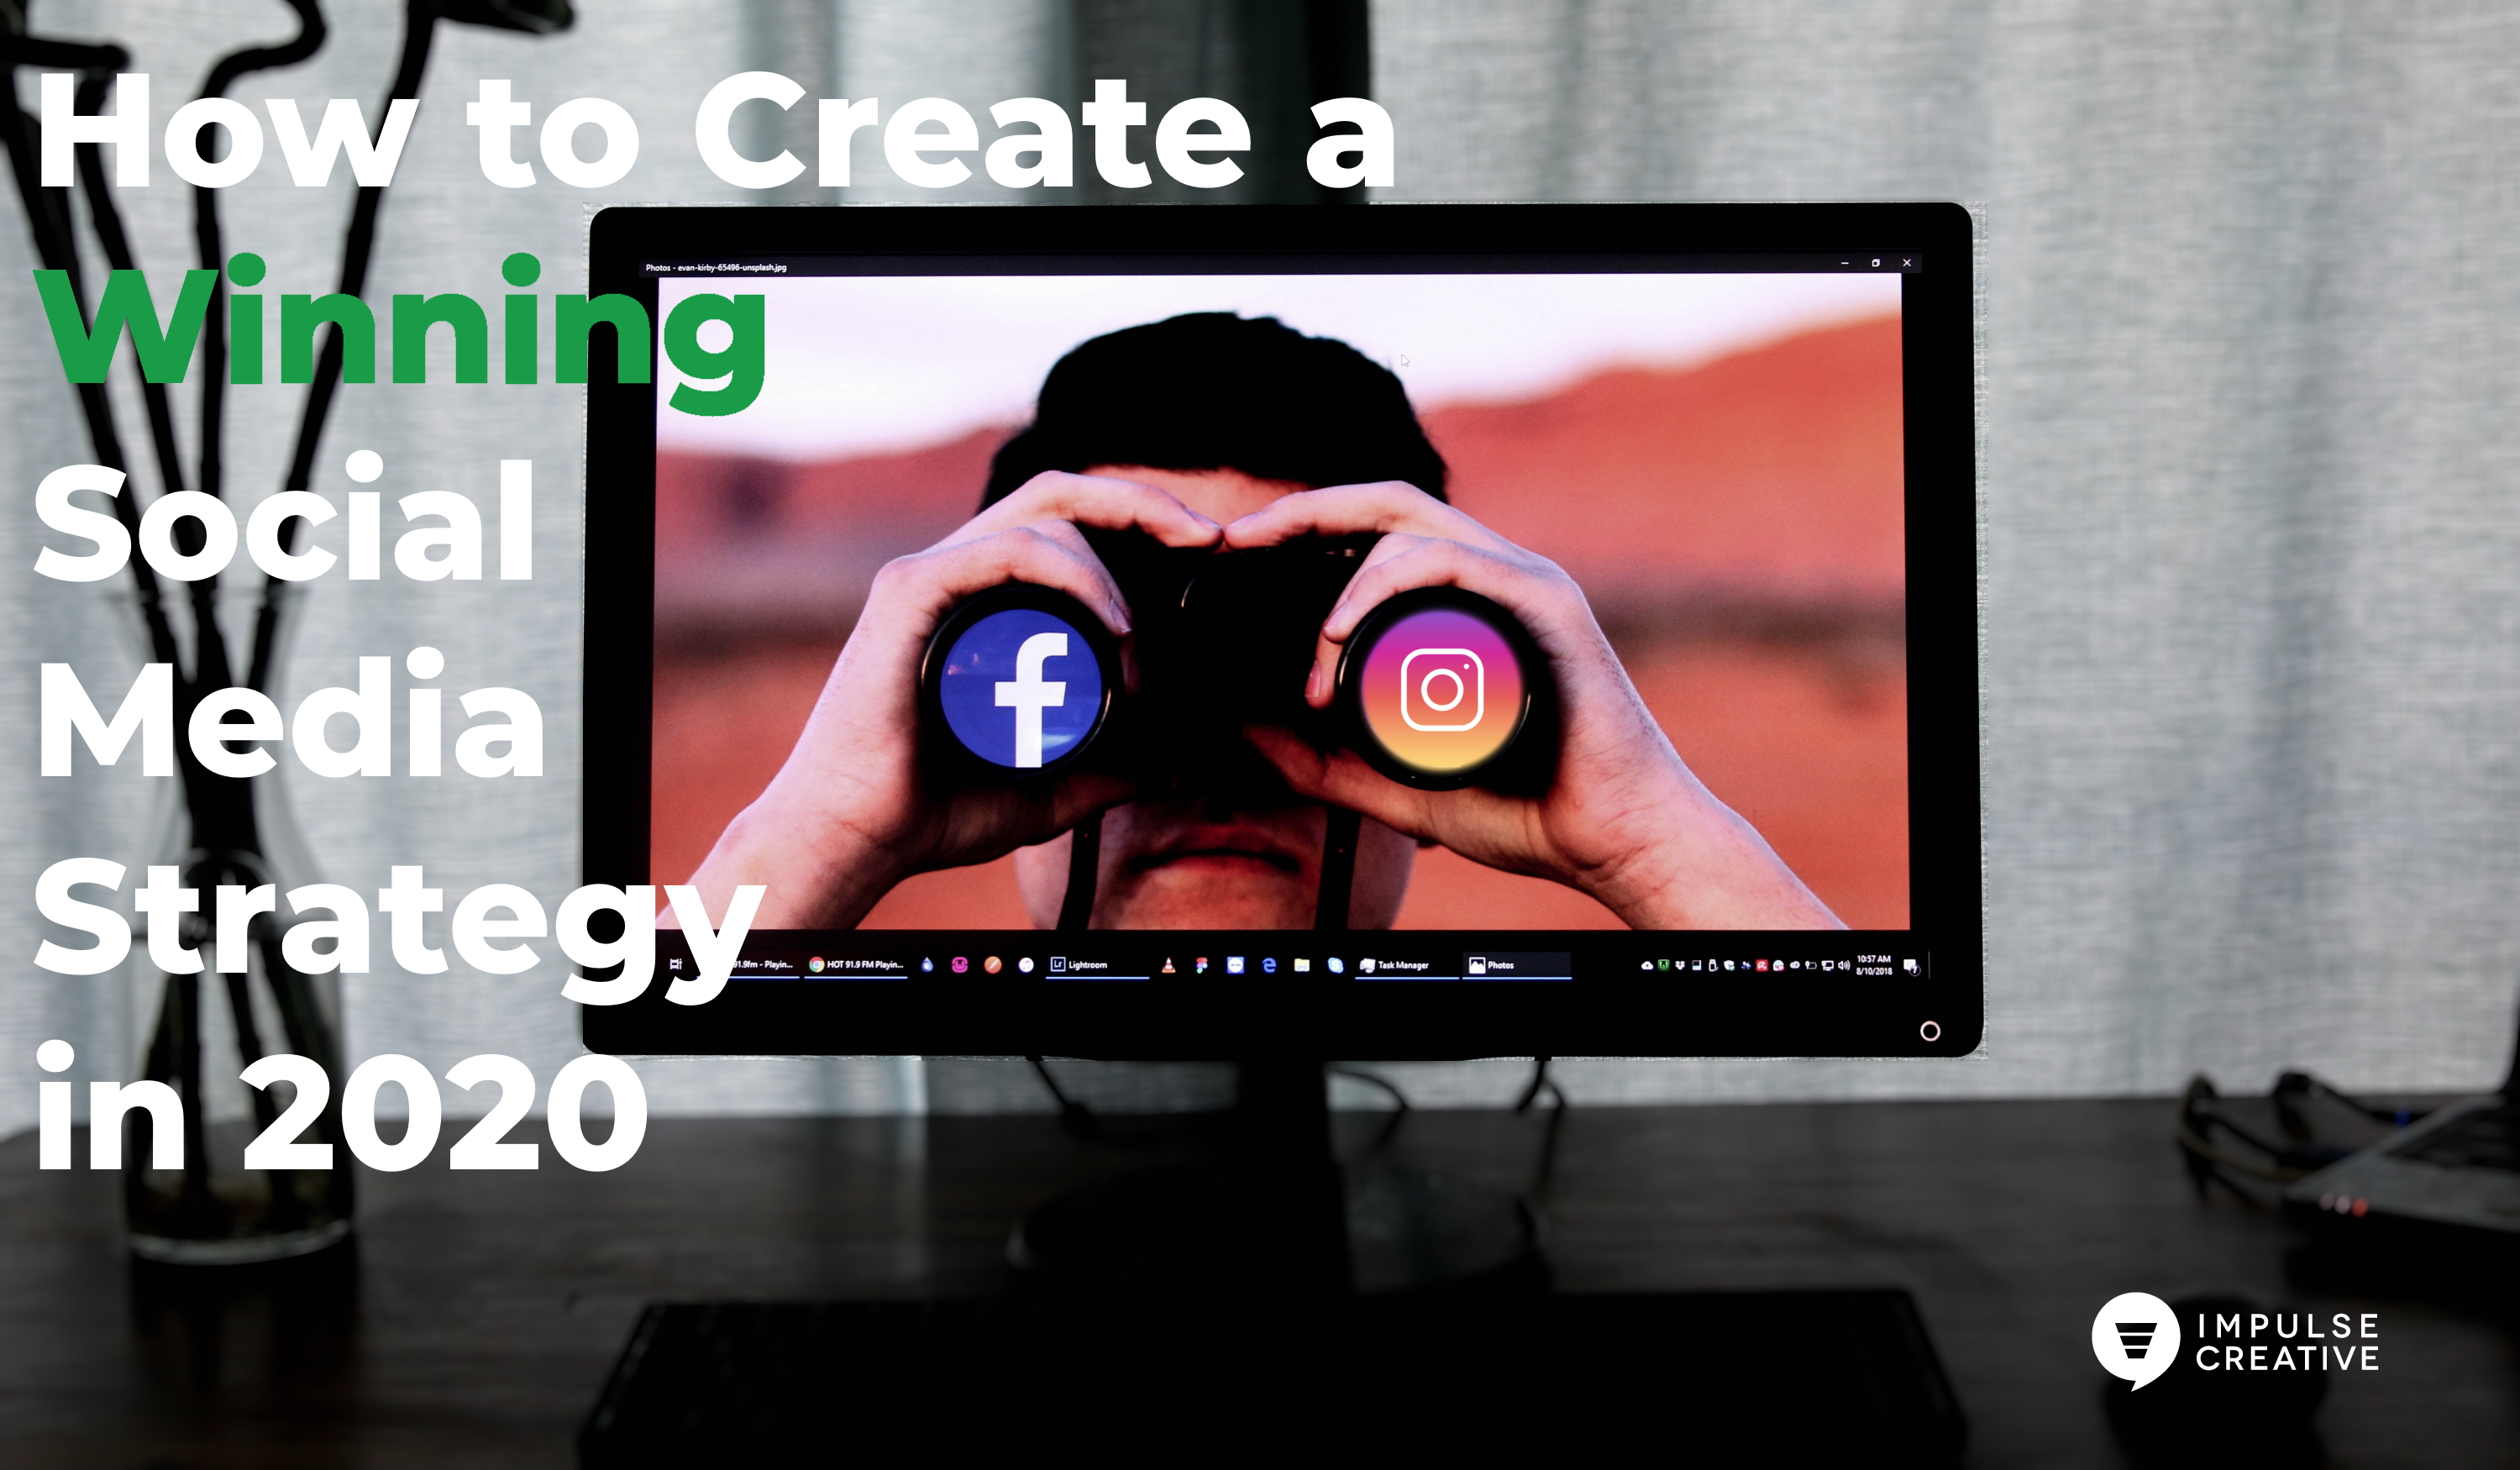 How to Create a Winning Social Media Strategy in 2020